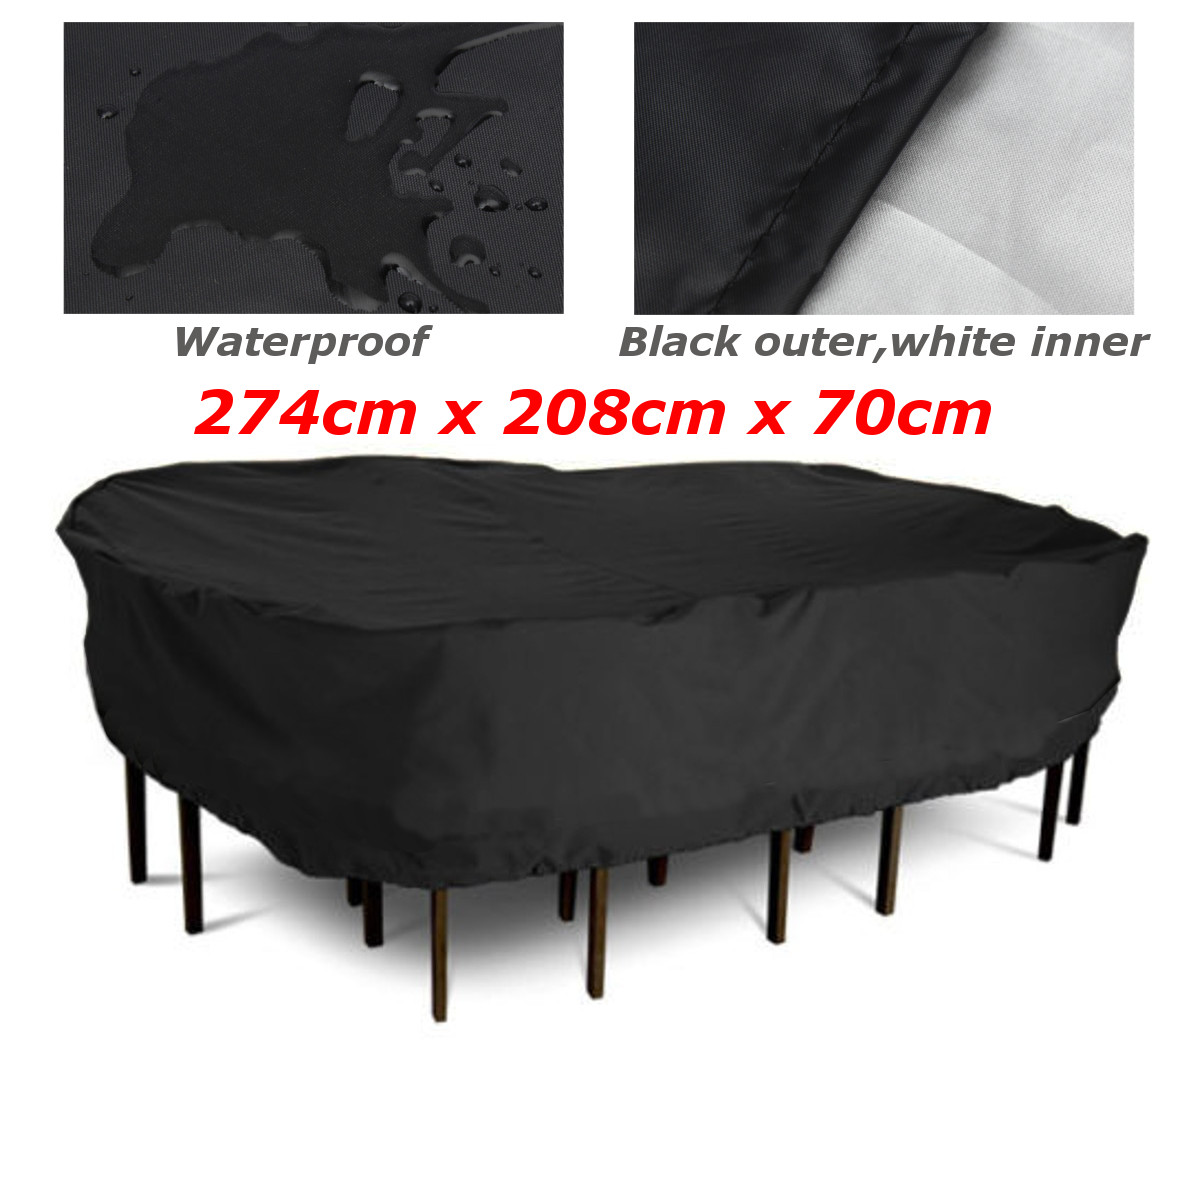 Polyester Patio Garden Outdoor Furniture Cover Waterproof Rectangular Table/Chair Protective Cover Table Cloth 274x208x70cm